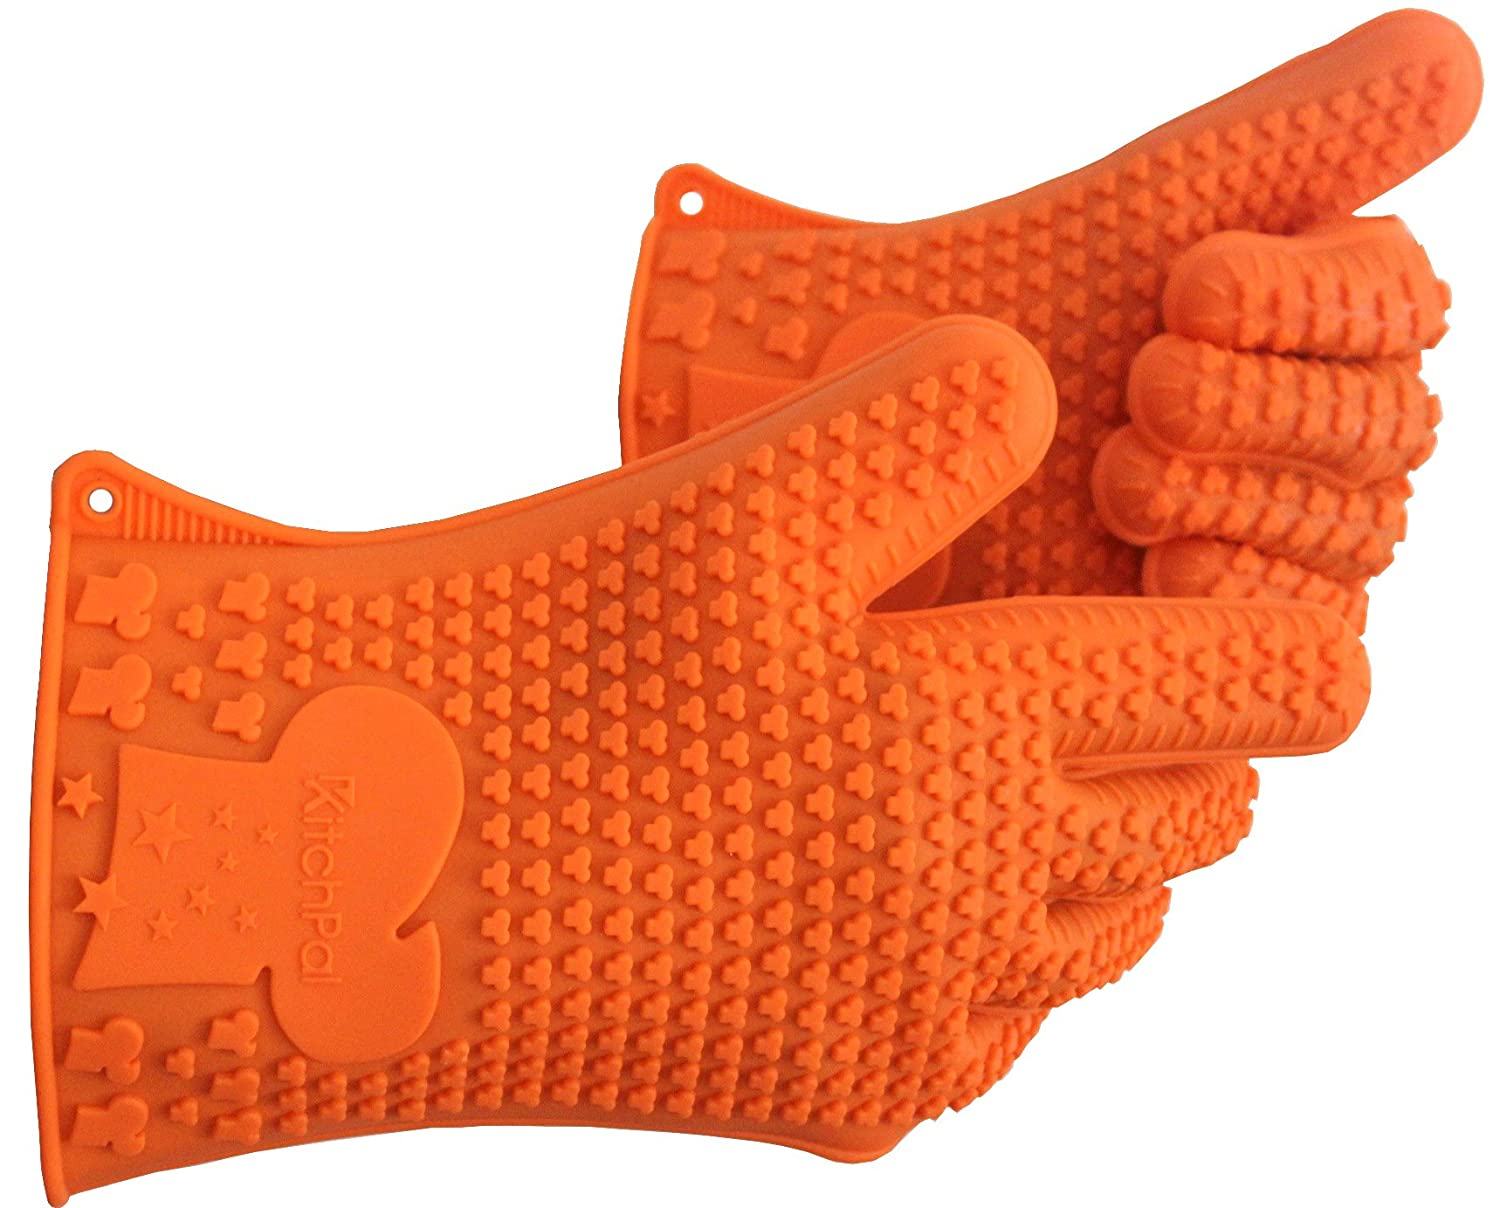 Heat Resistant Silicone Oven Mitts, Cooking Gloves, Pot Holder, BBQ Gloves for Barbeque, Grilling, Baking, Frying, Smoking, Unique design for best protection and grip